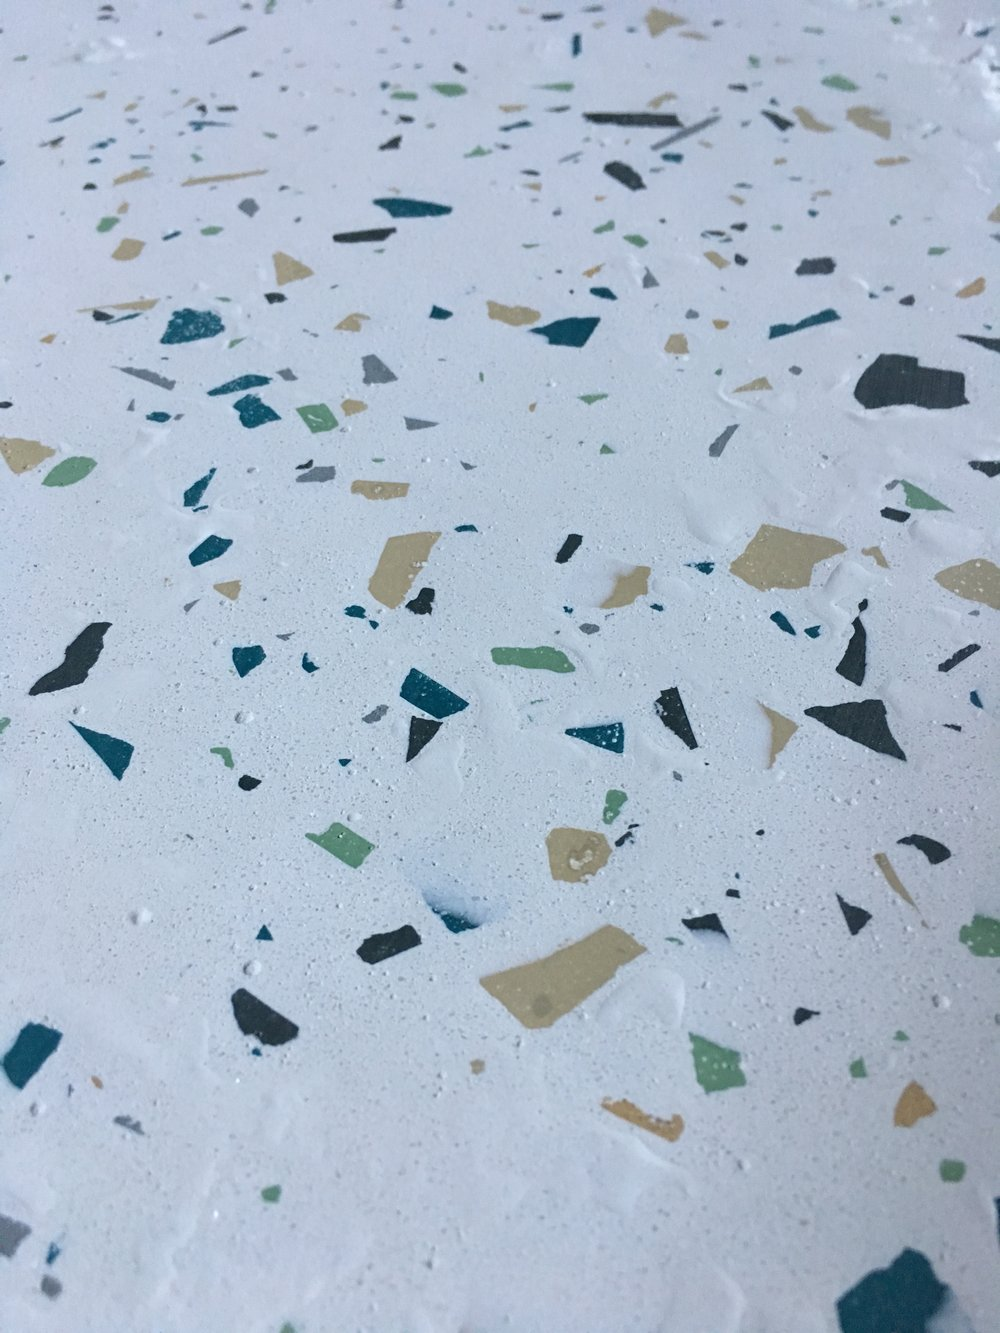 First glimpses of the terrazzo